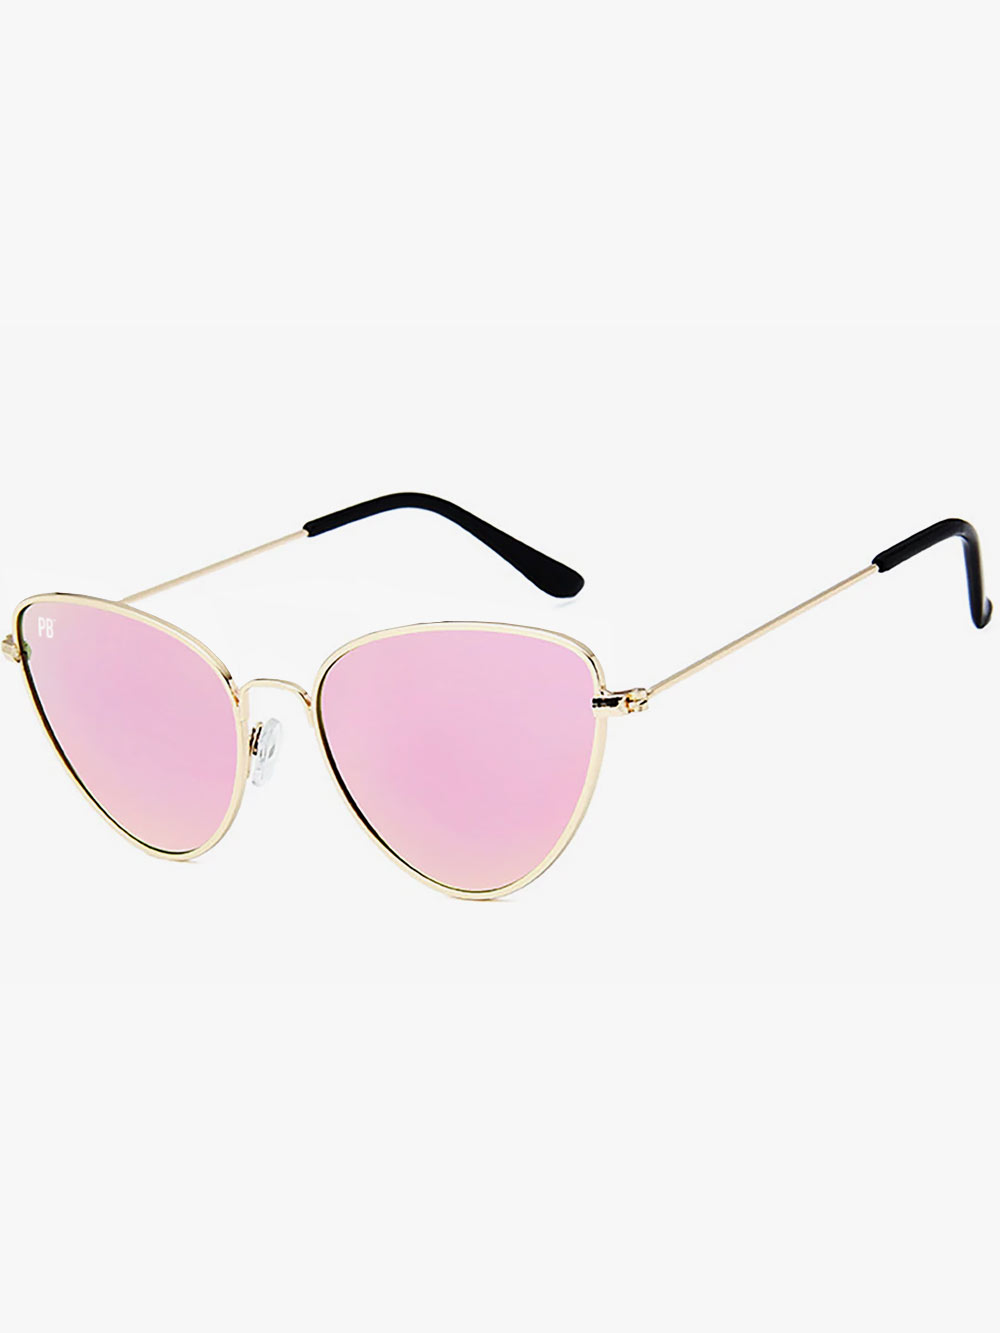 cate-eye-metal-gold-pink